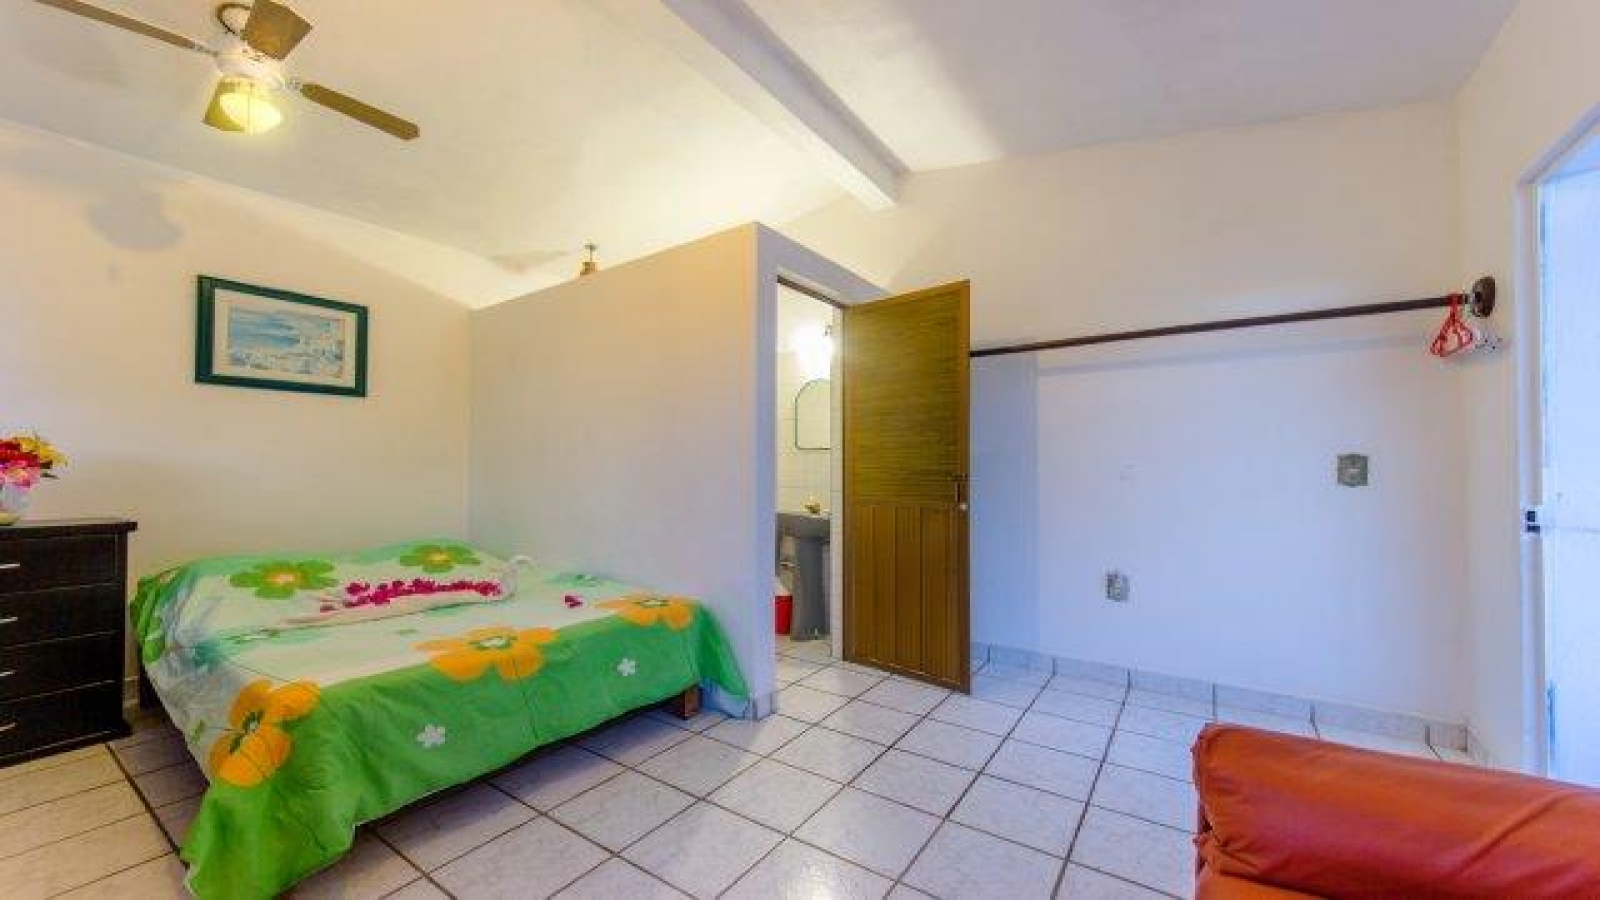 4 Bedrooms Bedrooms, ,House,For Sale,1023